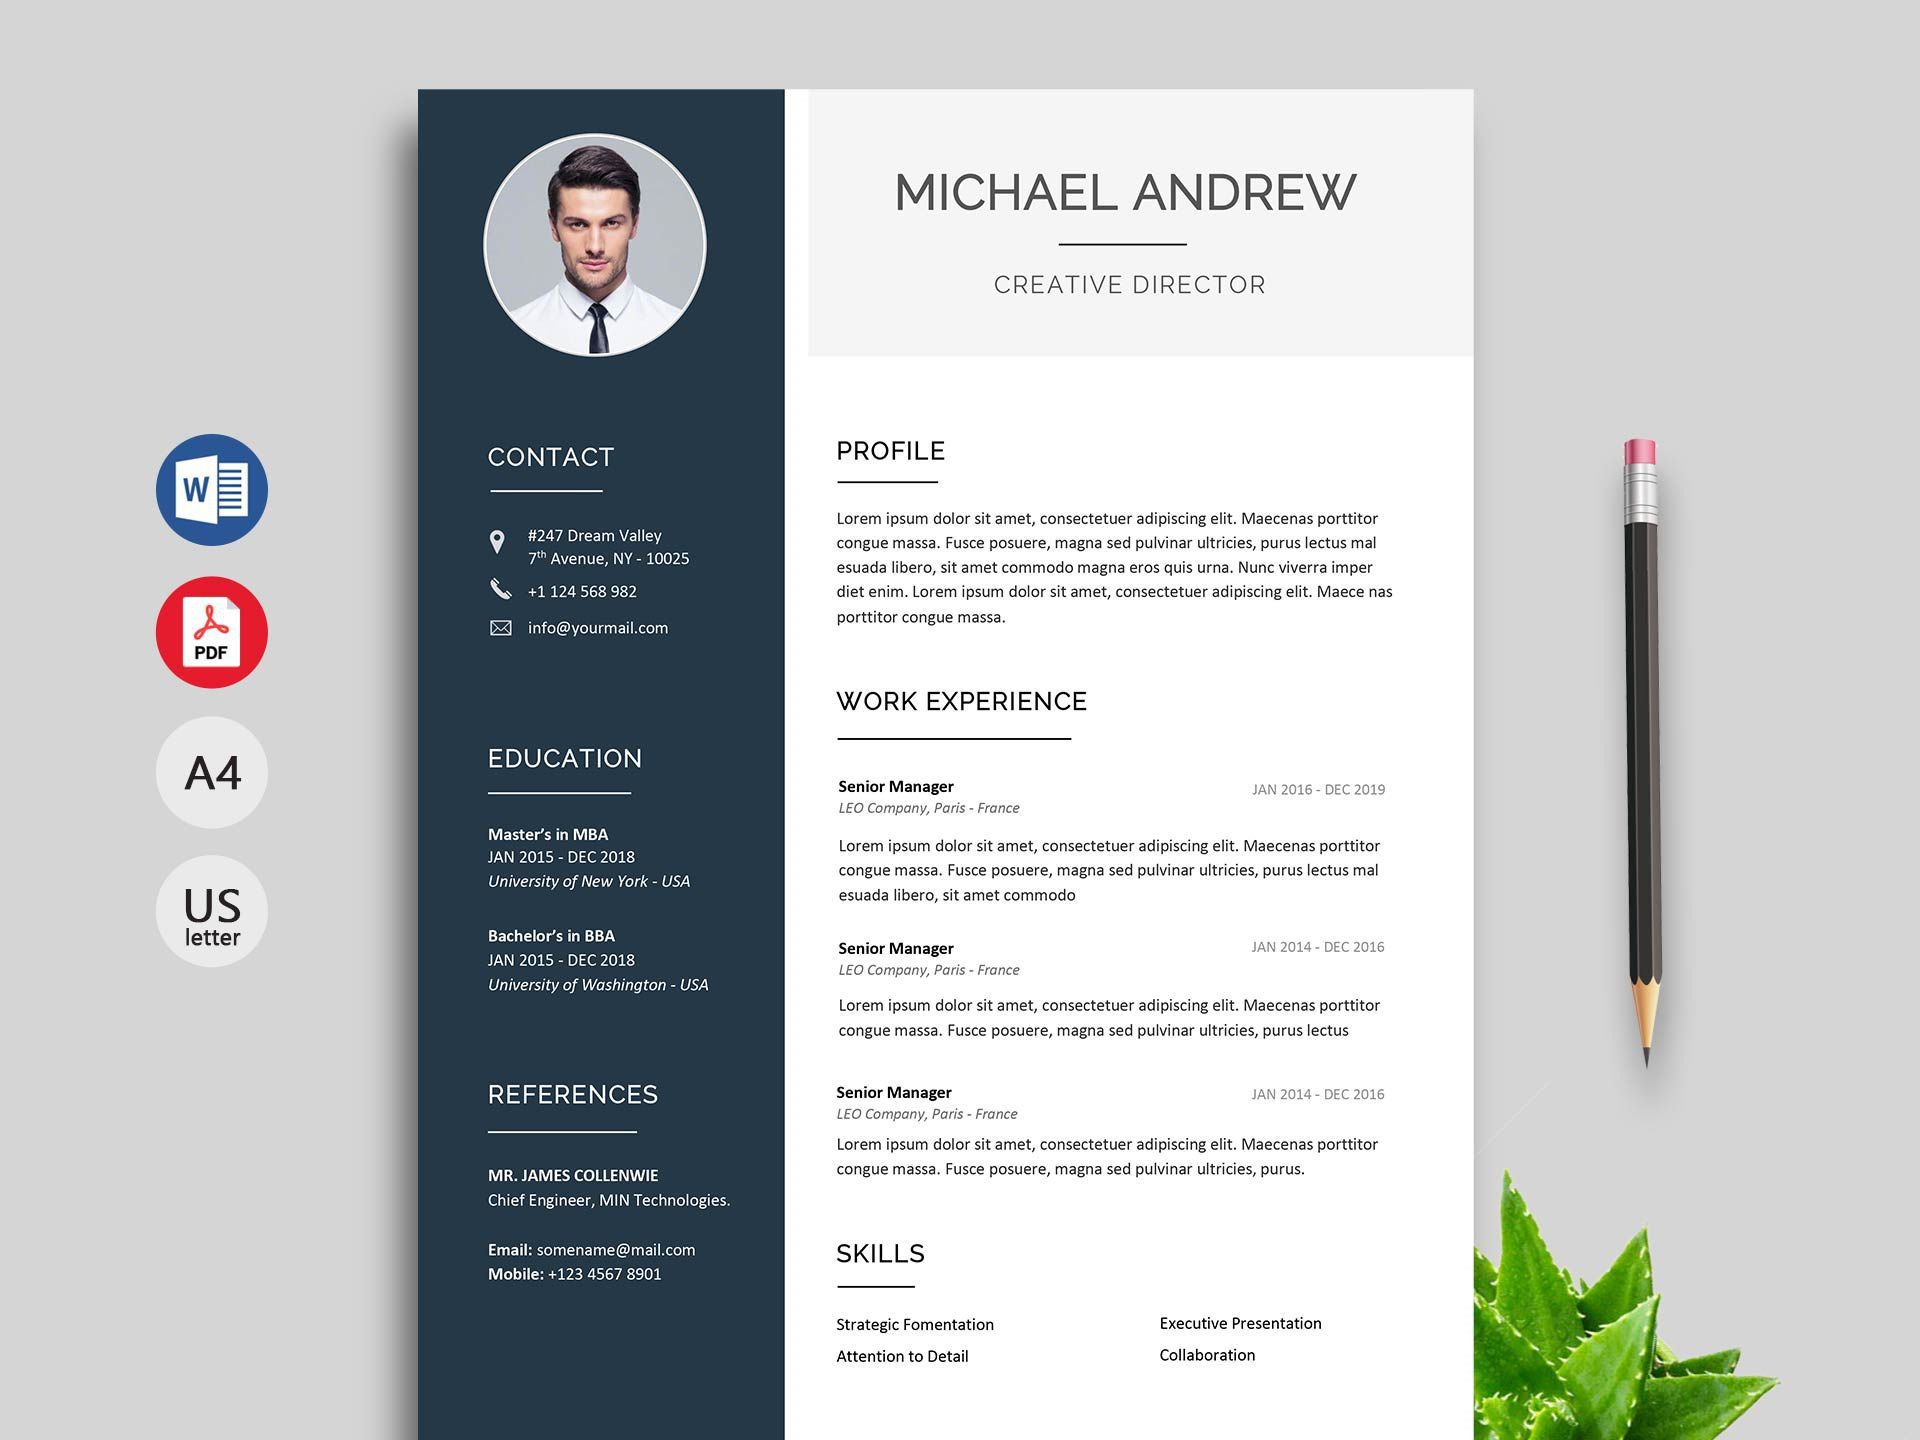 010 Awful Resume Sample Free Download Doc Photo  For Fresher PdfFull